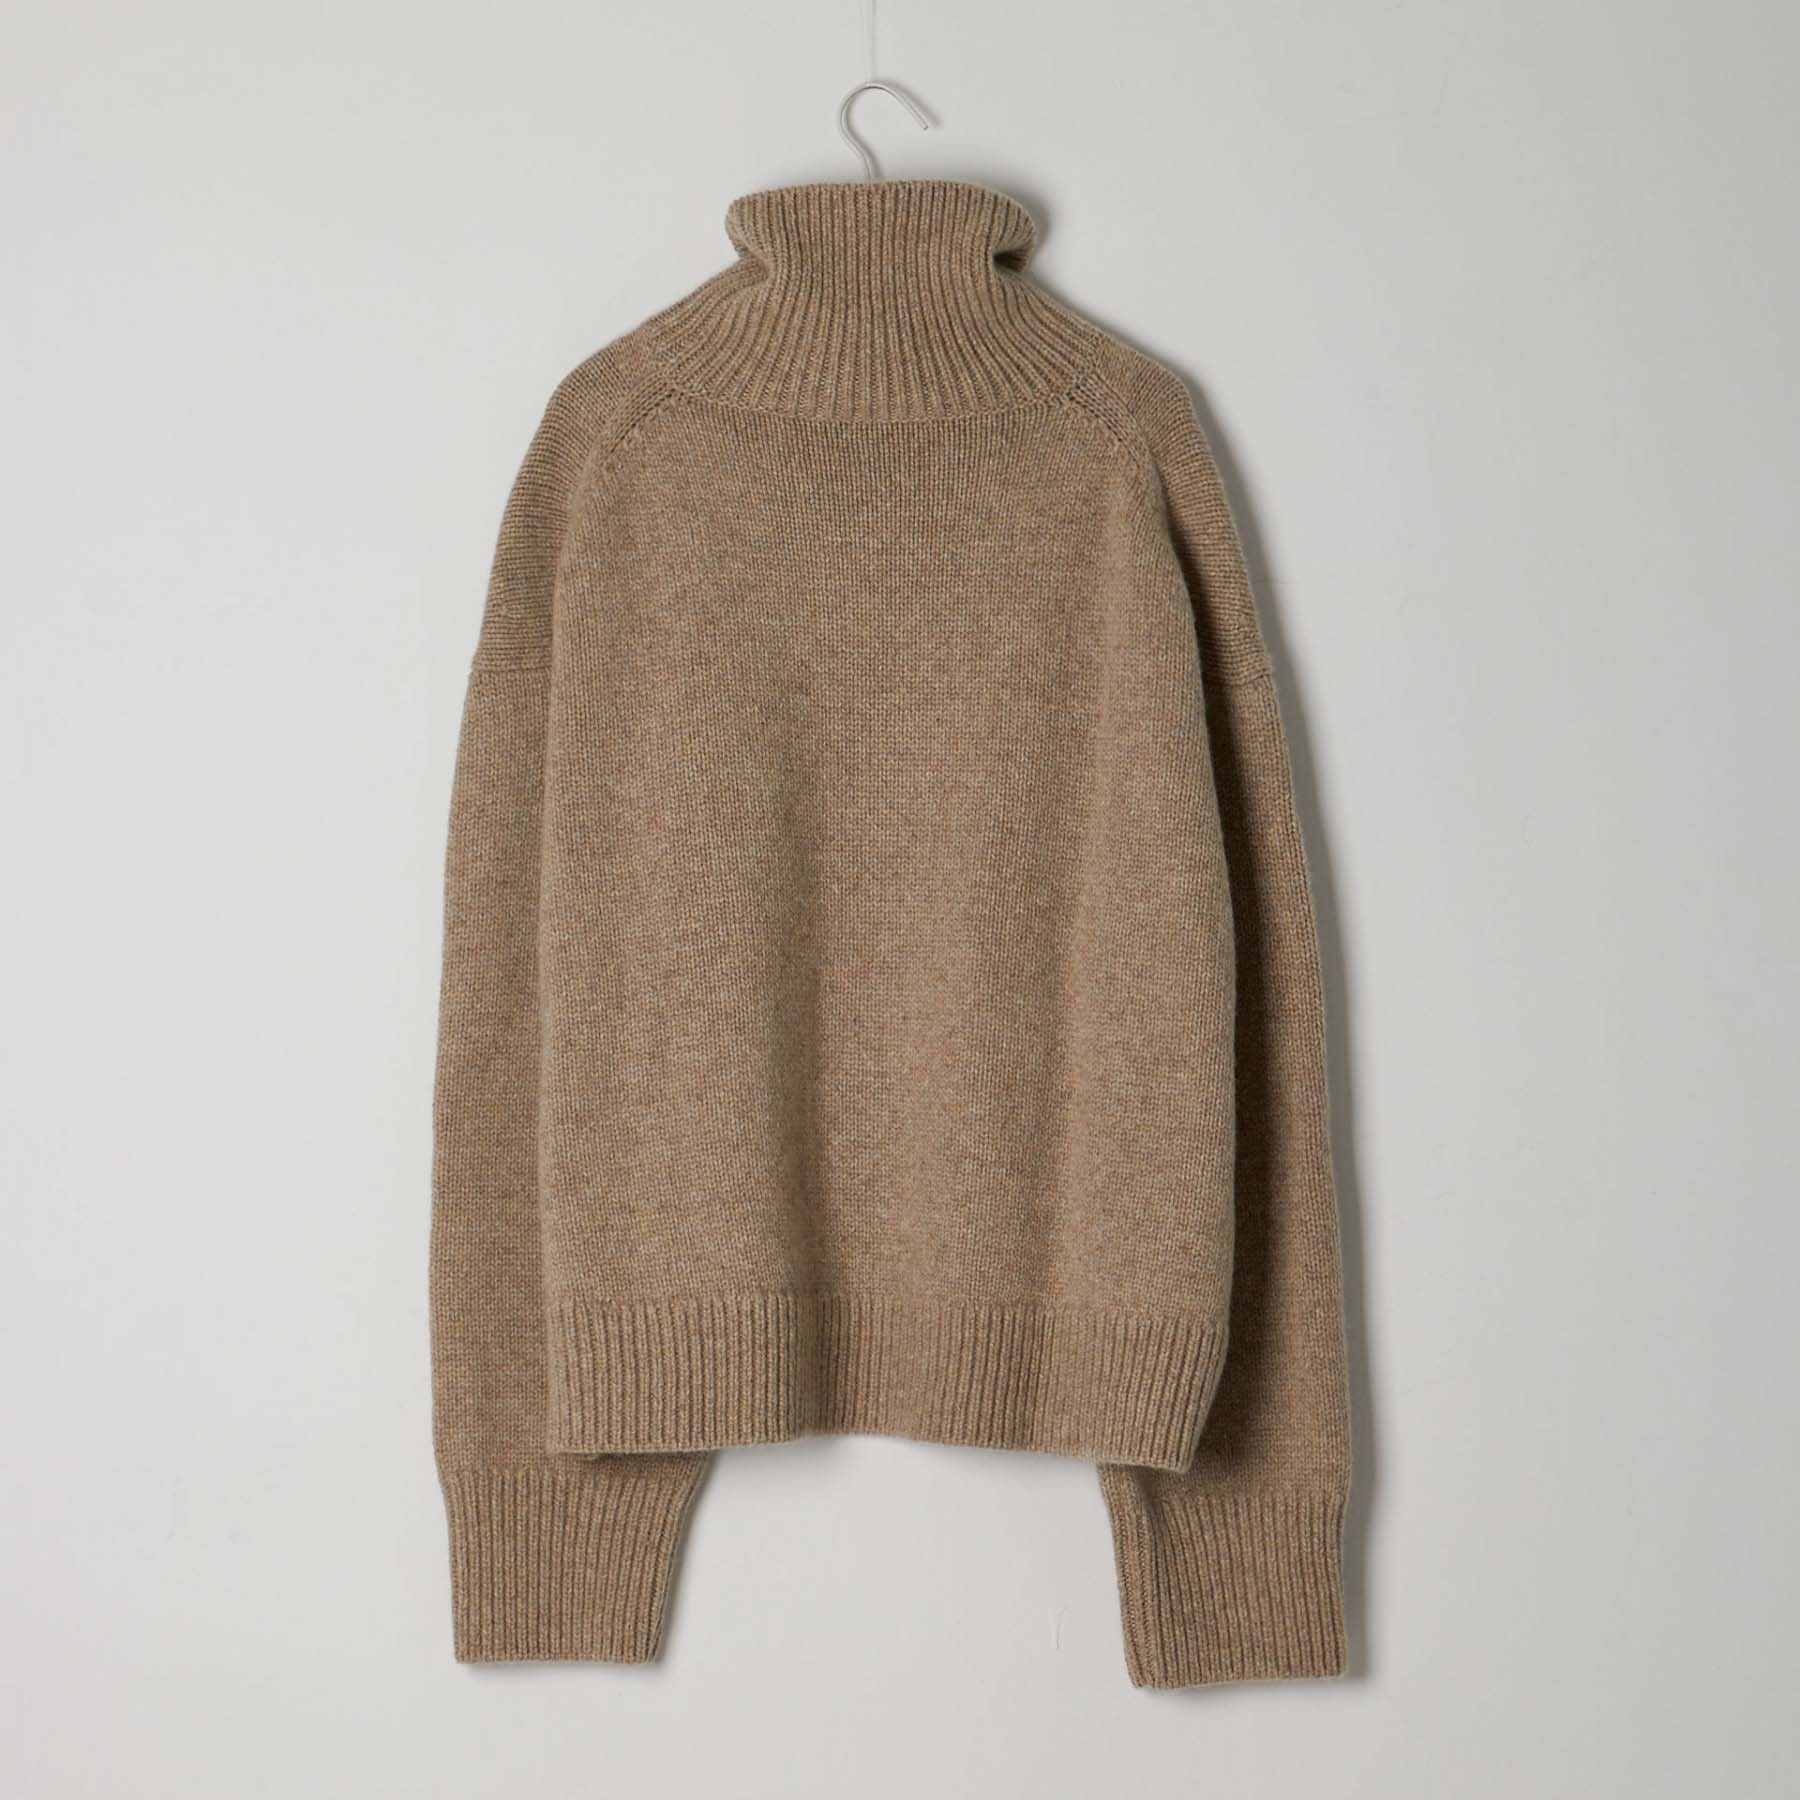 【CELINE】ASYMMETRIC KNITTED SWEATER / BEIGE